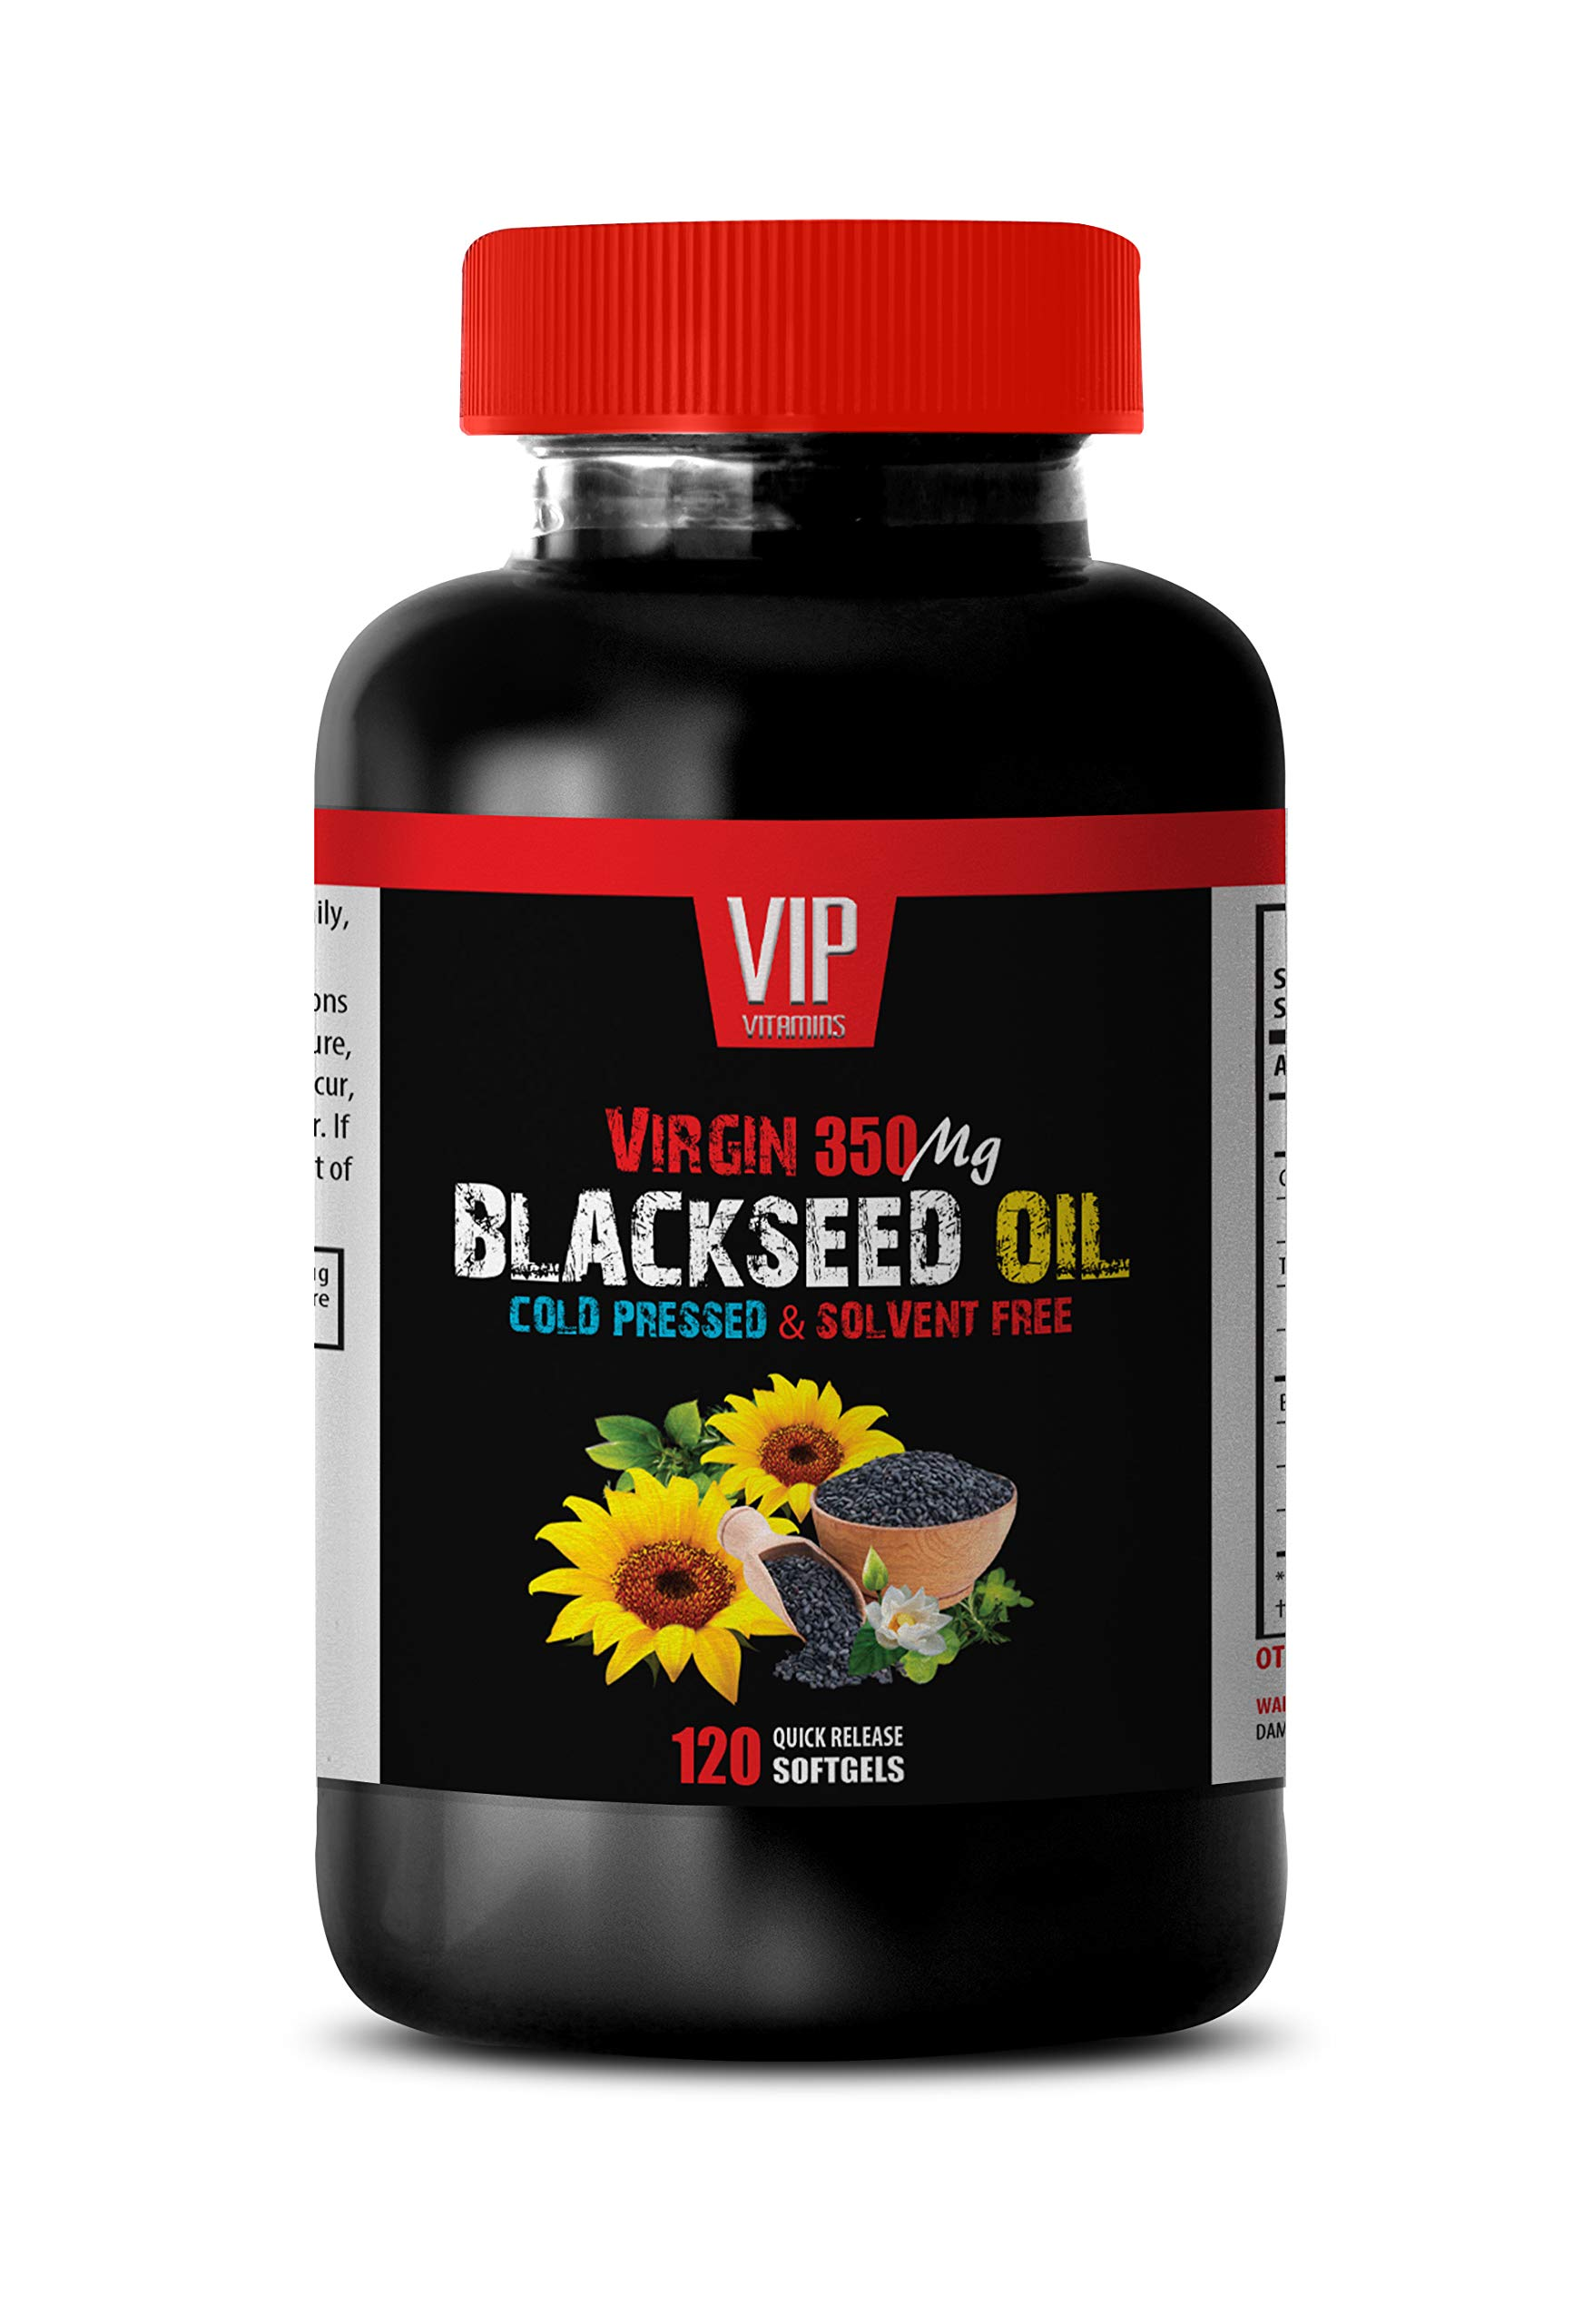 Weight Loss Natural Supplements - Black Seed Oil Virgin 350 MG - Black Seed Oil with Omega 3 6 9-1 Bottle 120 Softgels by VIP VITAMINS